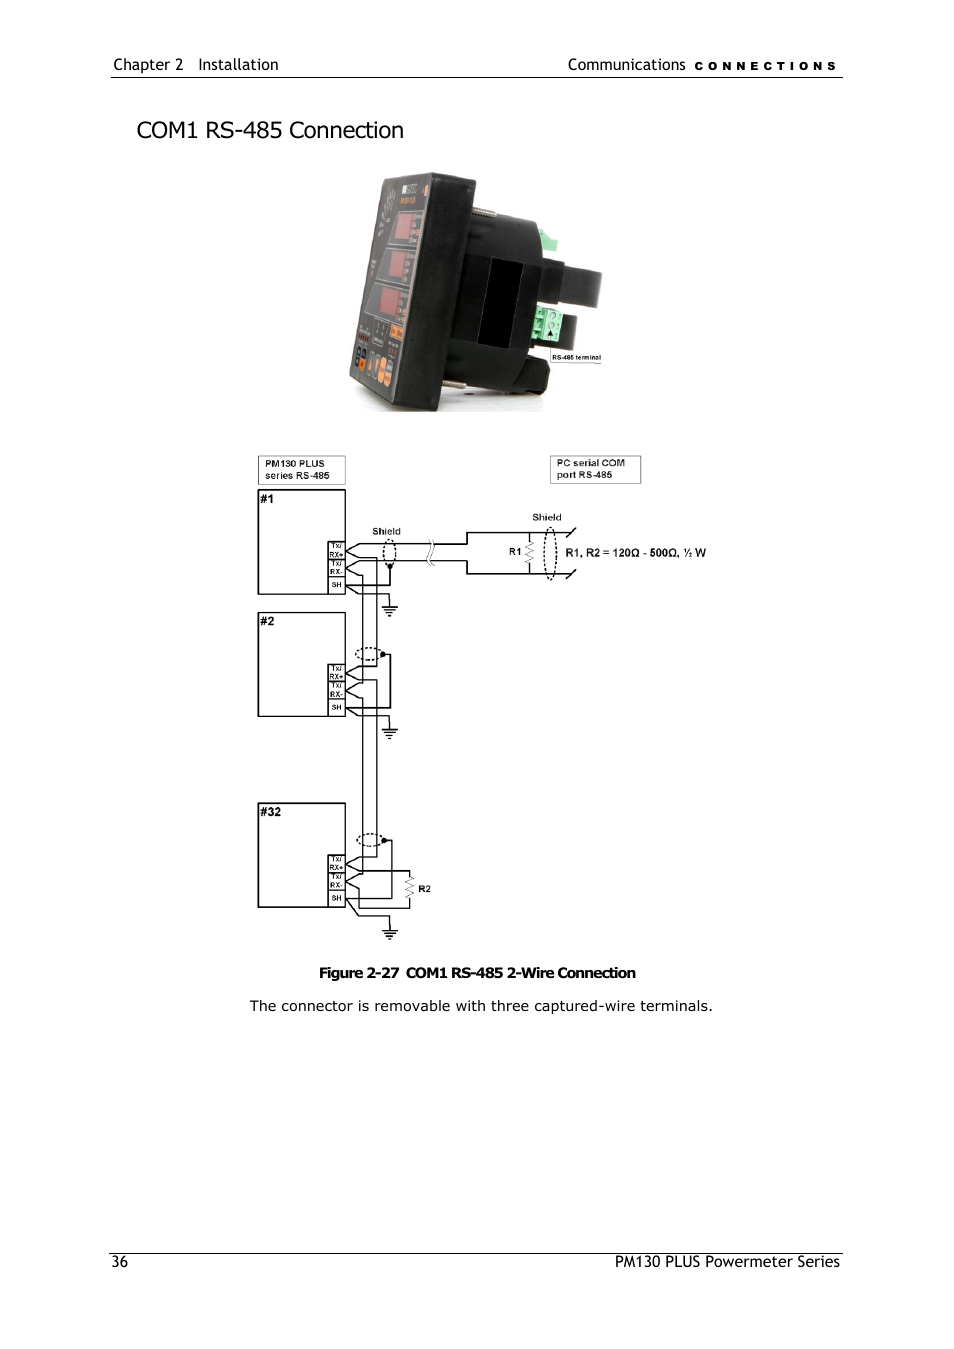 Com1 rs-485 connection | SATEC PM130 PLUS Manual User Manual | Page 36 / 159